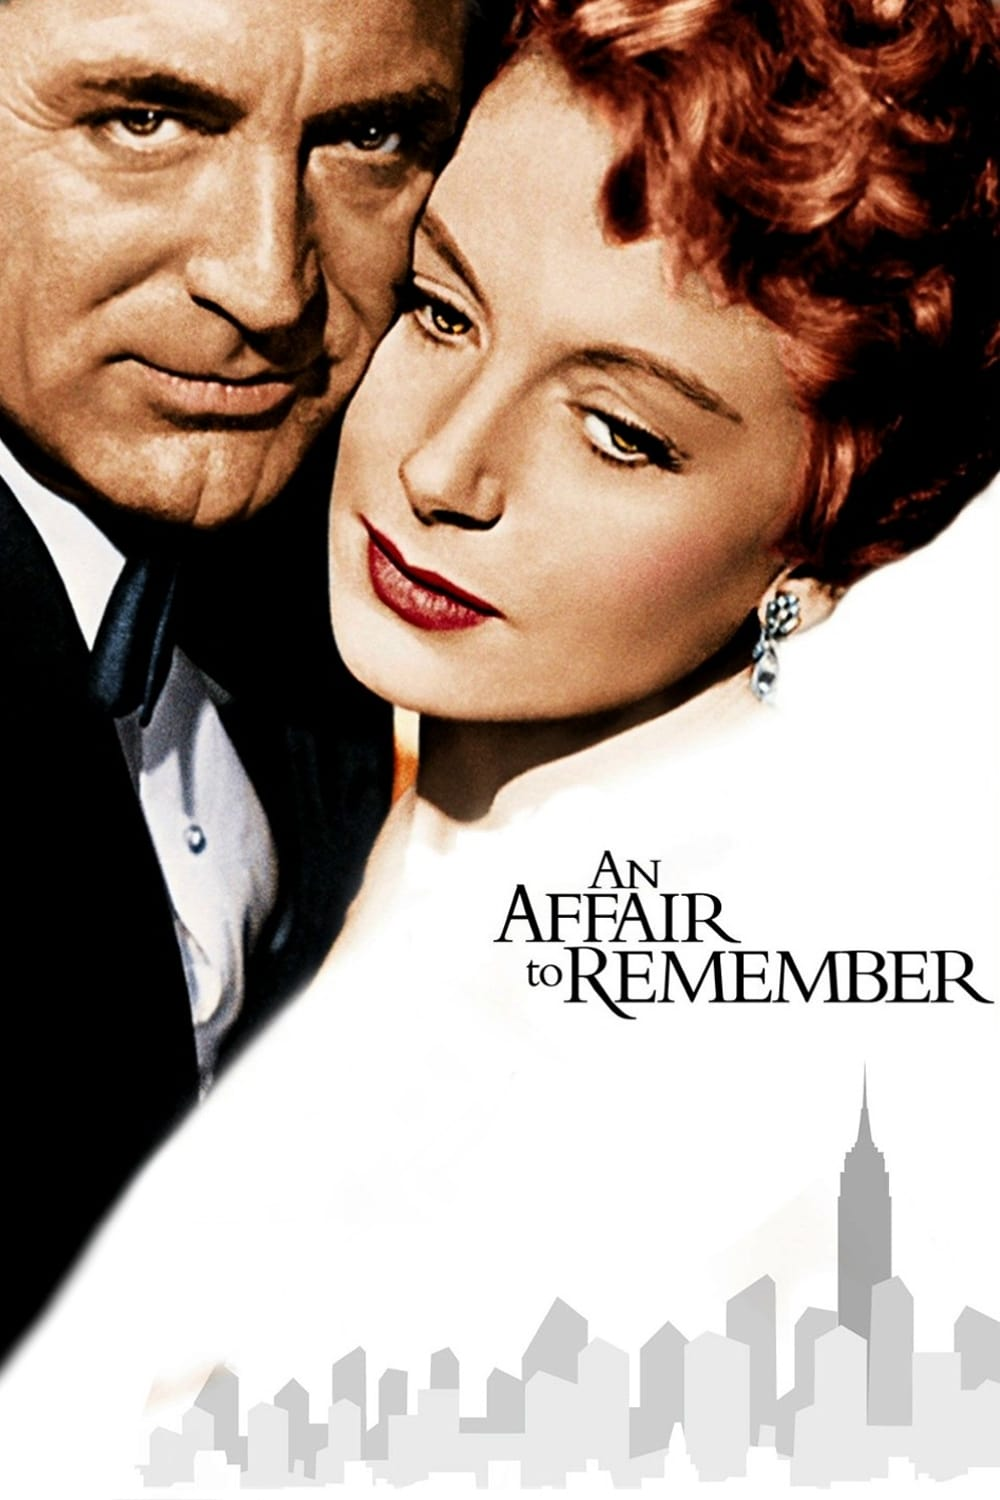 Poster for An Affair to Remember